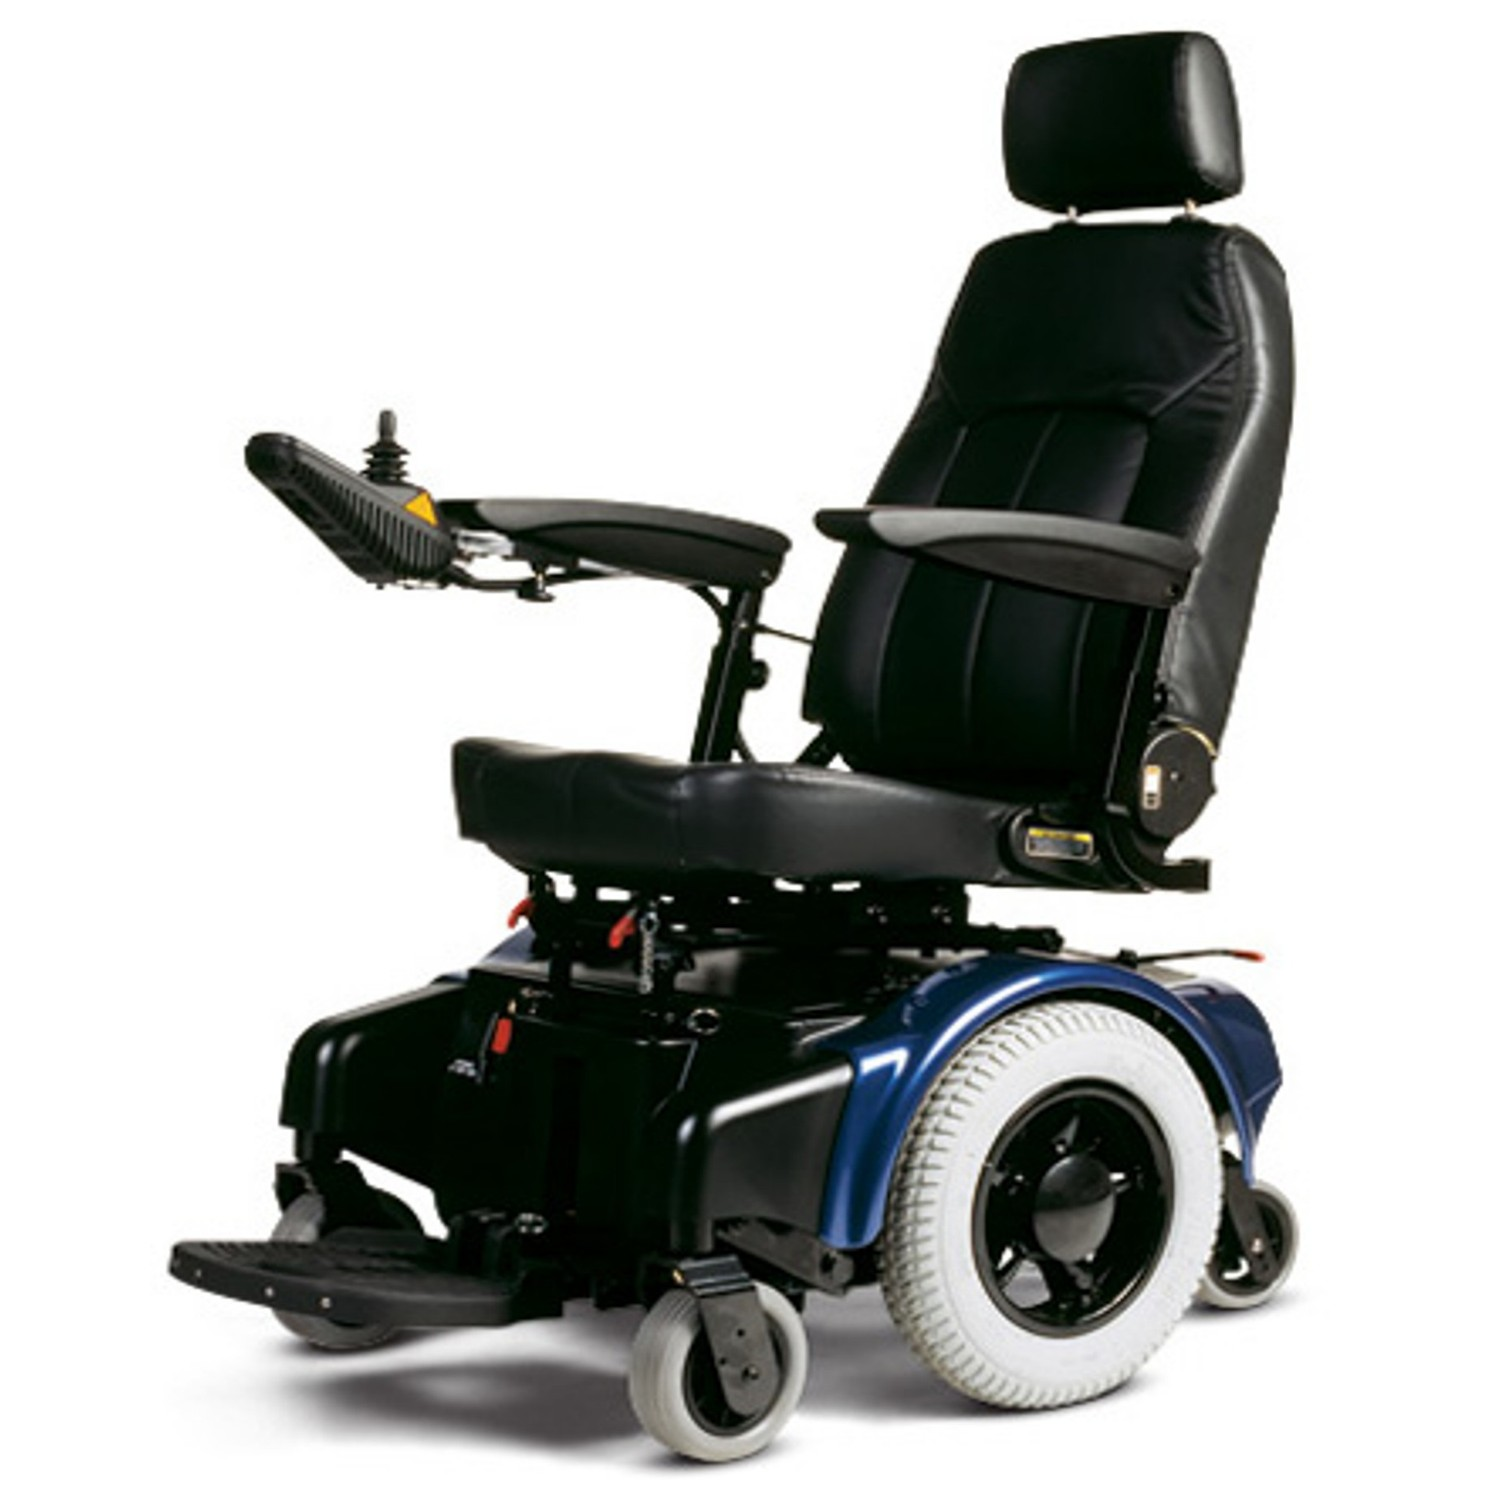 Power Chairs And Scooters Top Shoprider Power Wheelchairs Shoprider Navigator 424